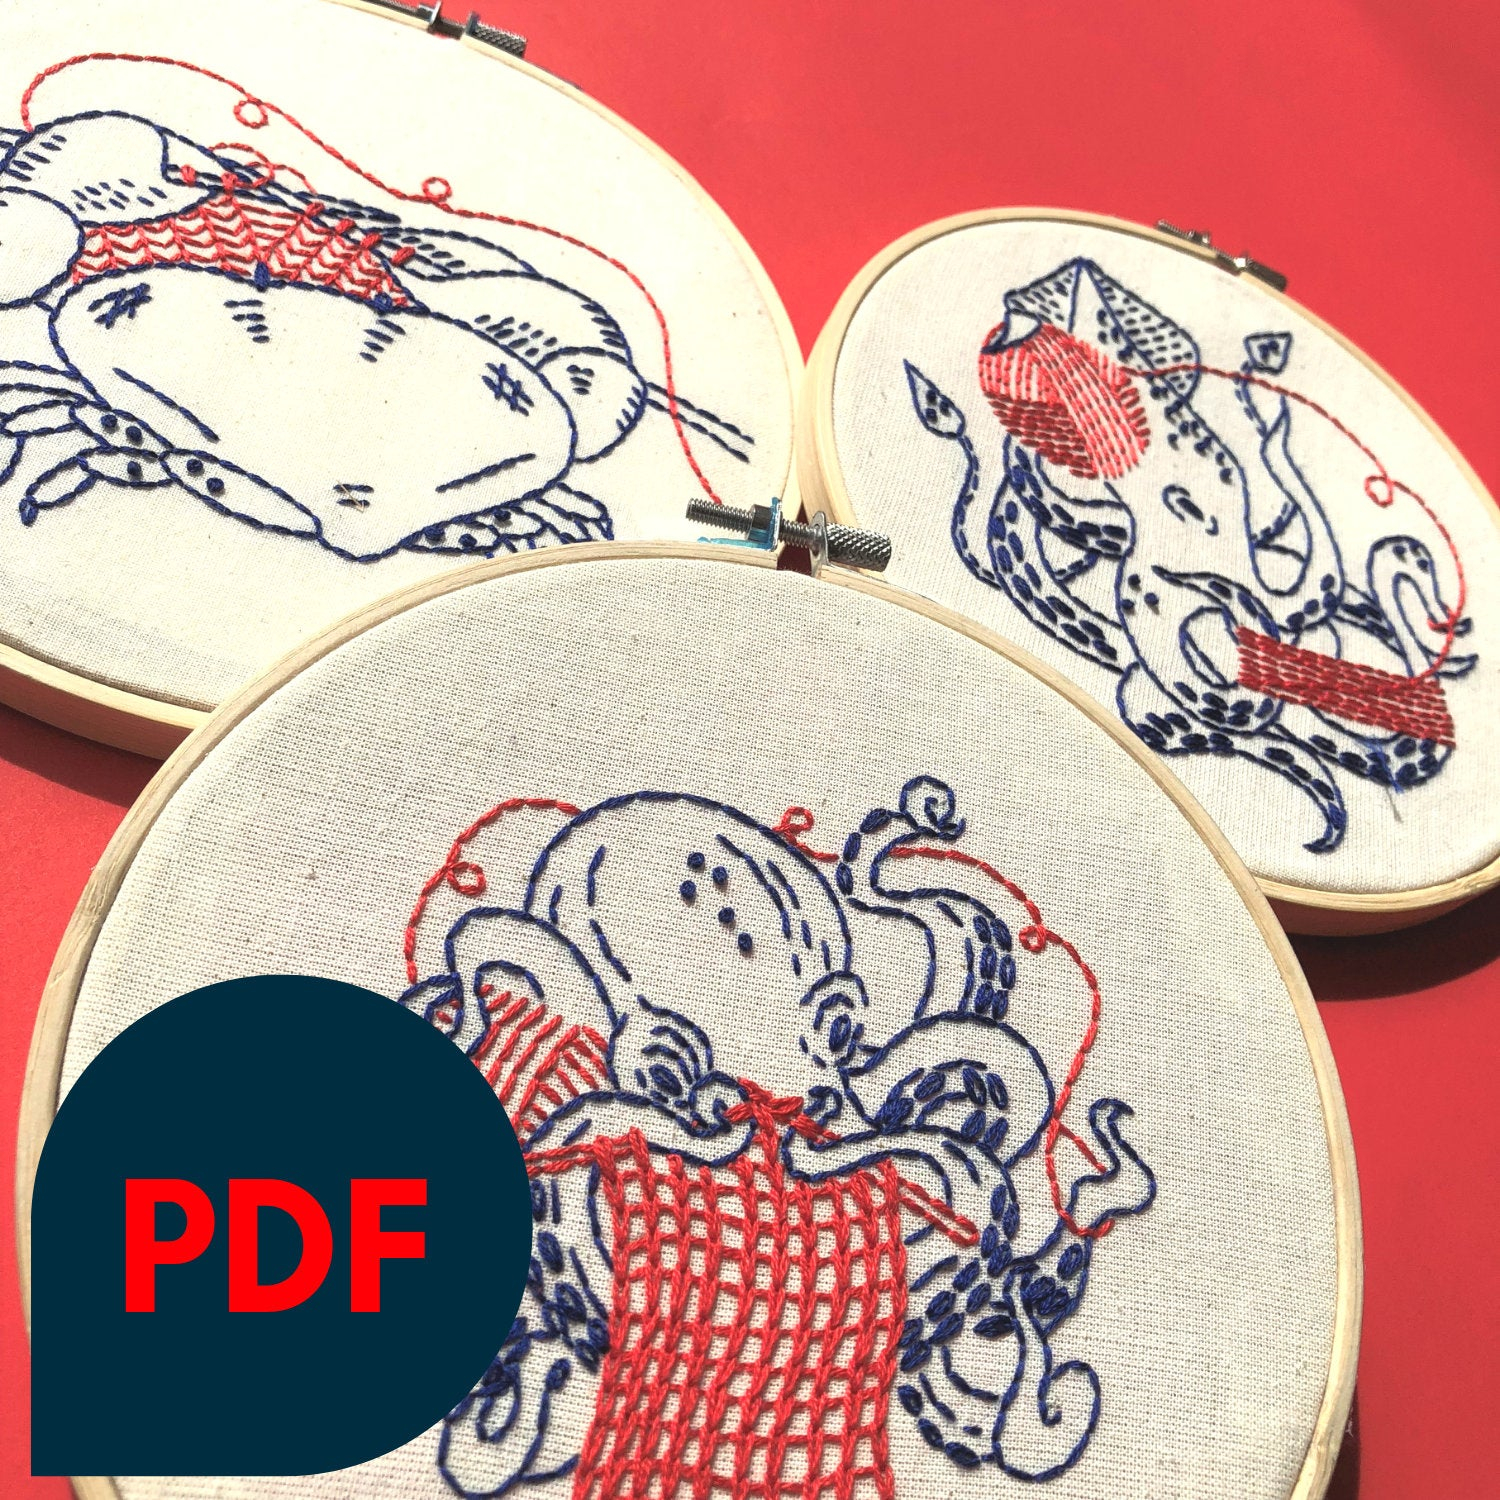 Nautical Embroidery Patterns Bundle Embroidery Pattern Downloadable Pdf Nautical Knitting Collection Squid Crab Octopus